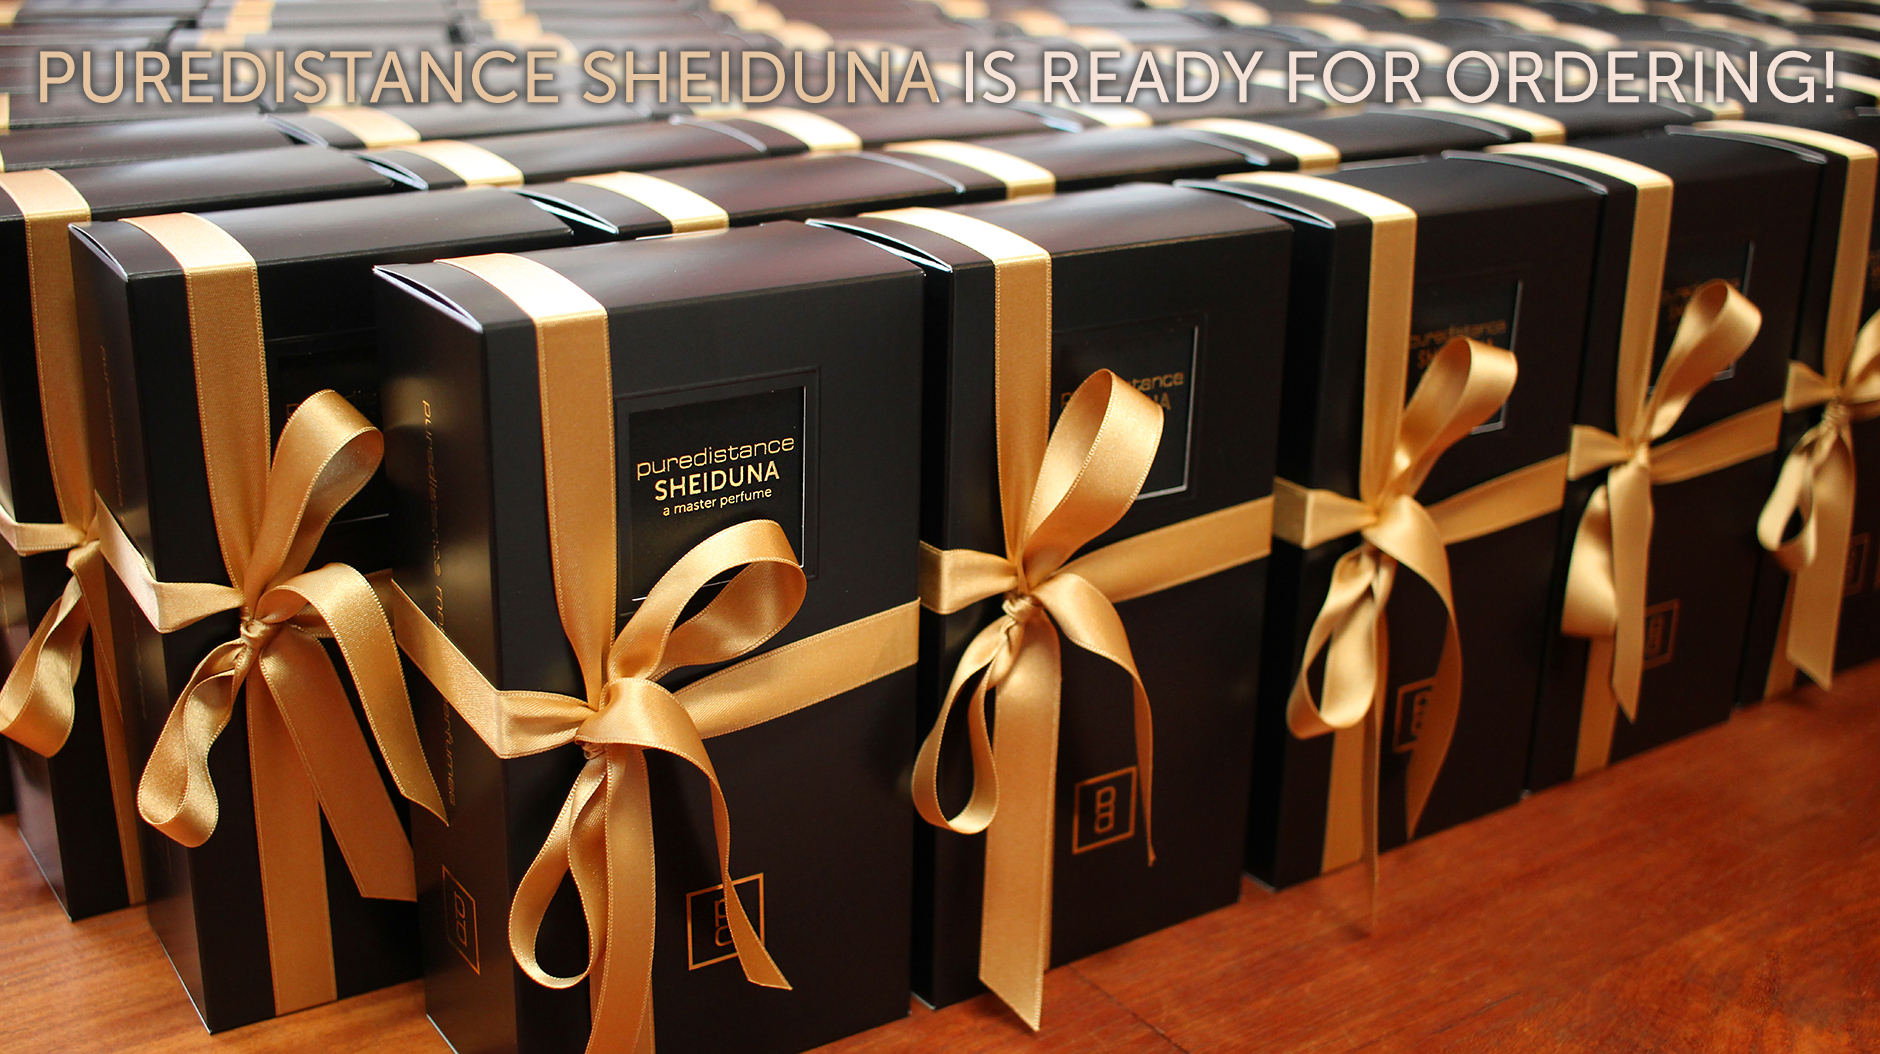 puredistance sheiduna packages ready with ribbon